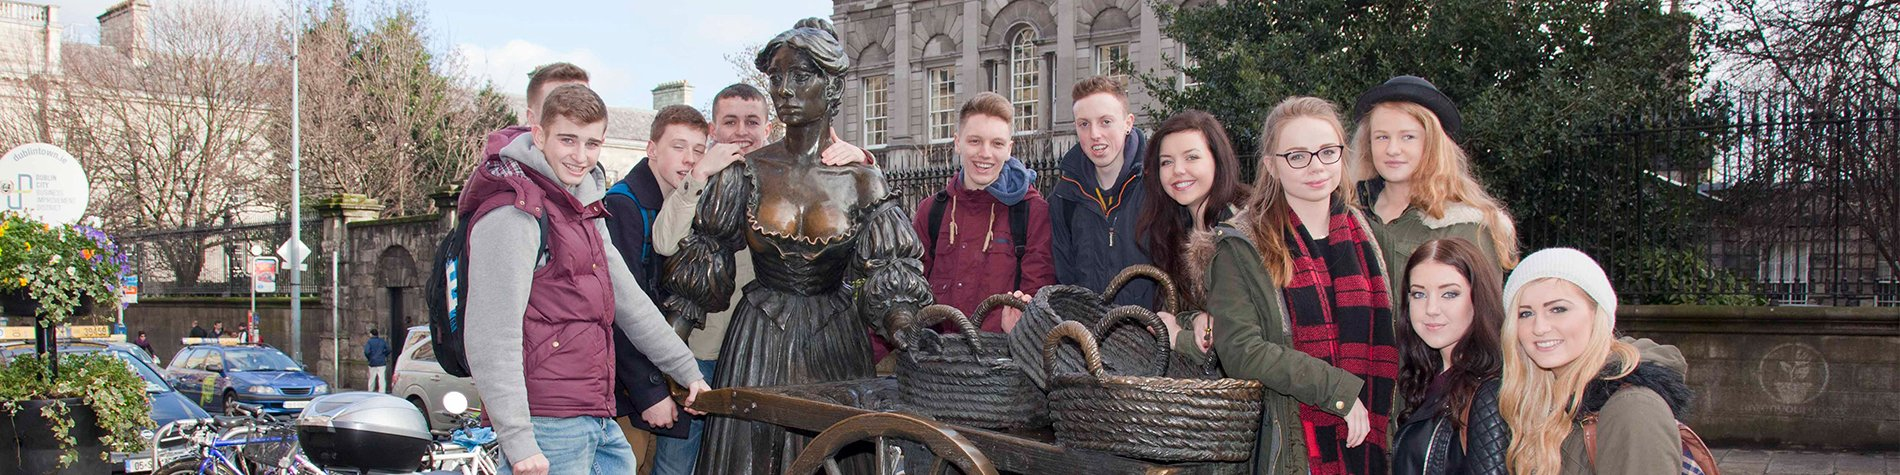 Group with Molly Malone Statue in Ireland